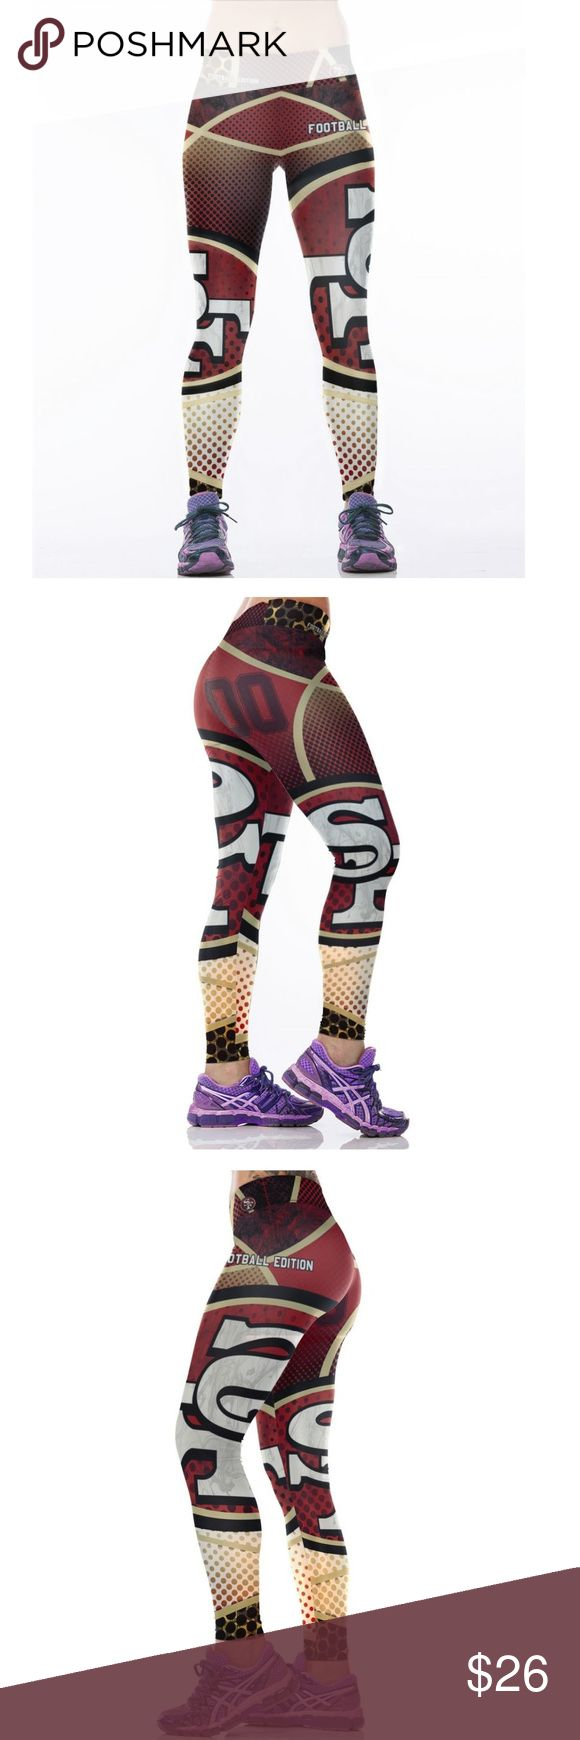 San Francisco 49ers NFL Leggings Root for your favorite team in these high quality NFL leggings! Perfect wardrobe addition while watching Sunday football games. The vivid colors and designs are sure to turn heads! Get a pair now while they last to show your team support every week as they inch their way to the glorious Super Bowl Condition: Brand New in Packaging Material: Spandex / Polyester Measurements:  (Length / Waist / Hip) S/M: 36 / 27.5-37 / 33-41.5 L/XL: 36.5 / 30–39.5 / 35.5-44…